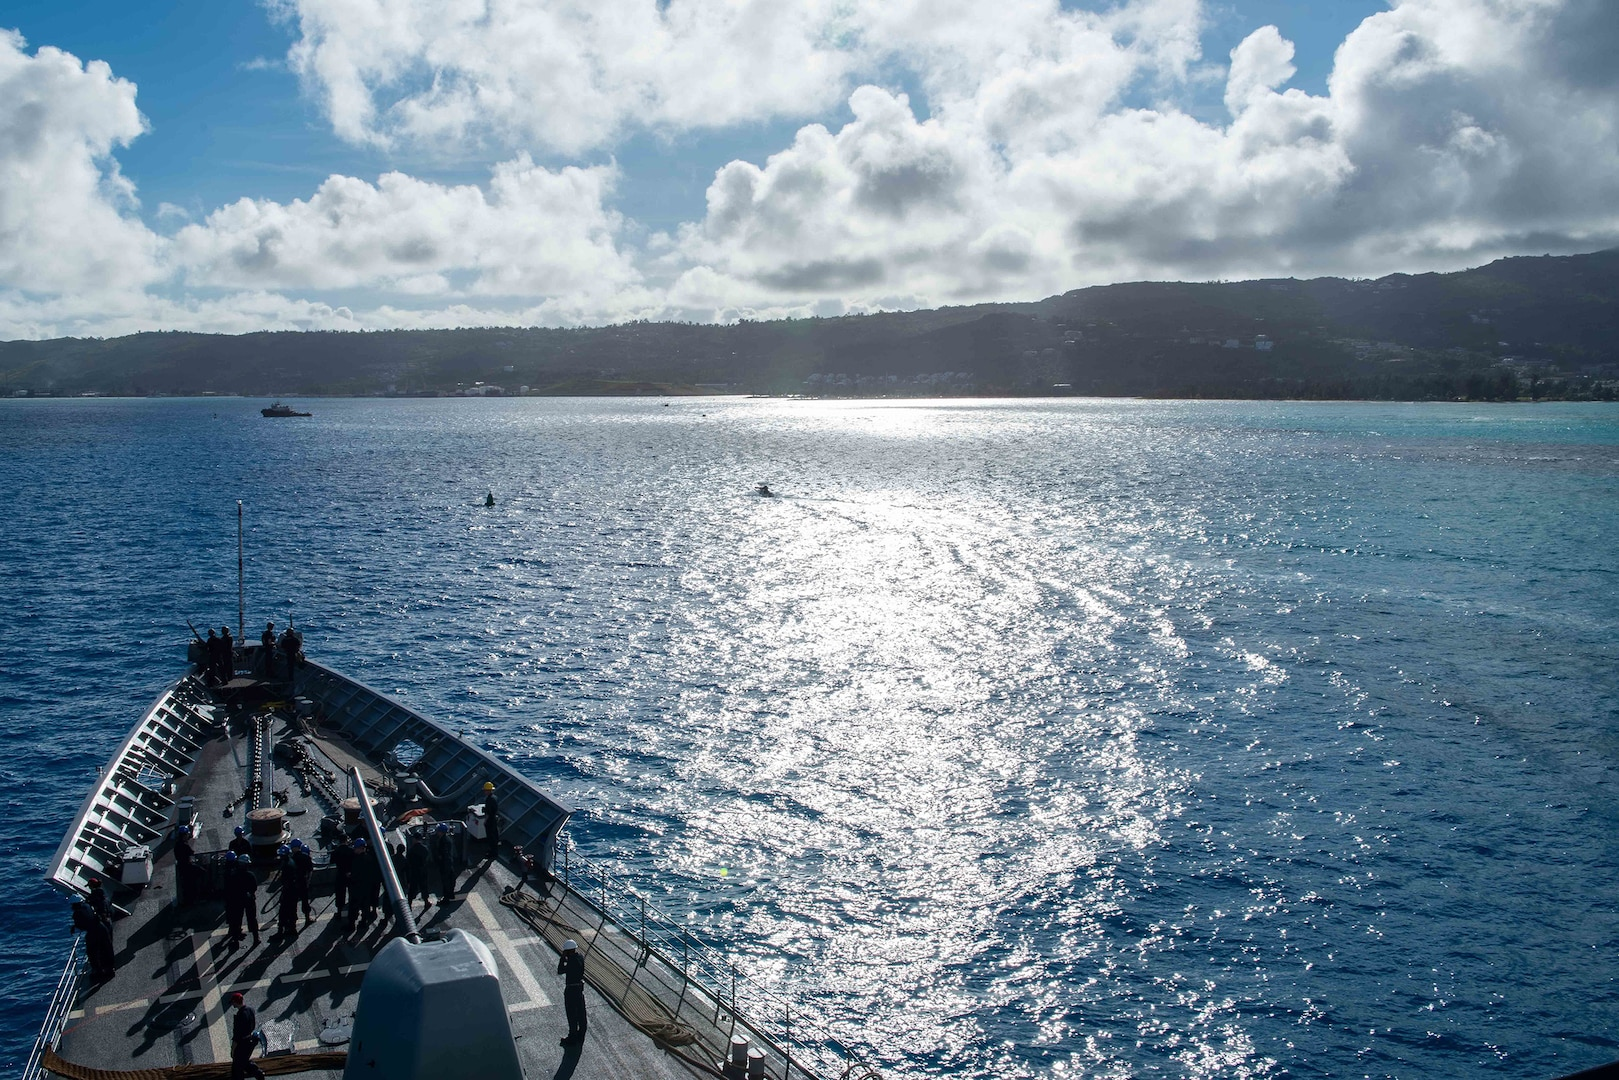 USS Bunker Hill visits Saipan on Indo-Pacific deployment